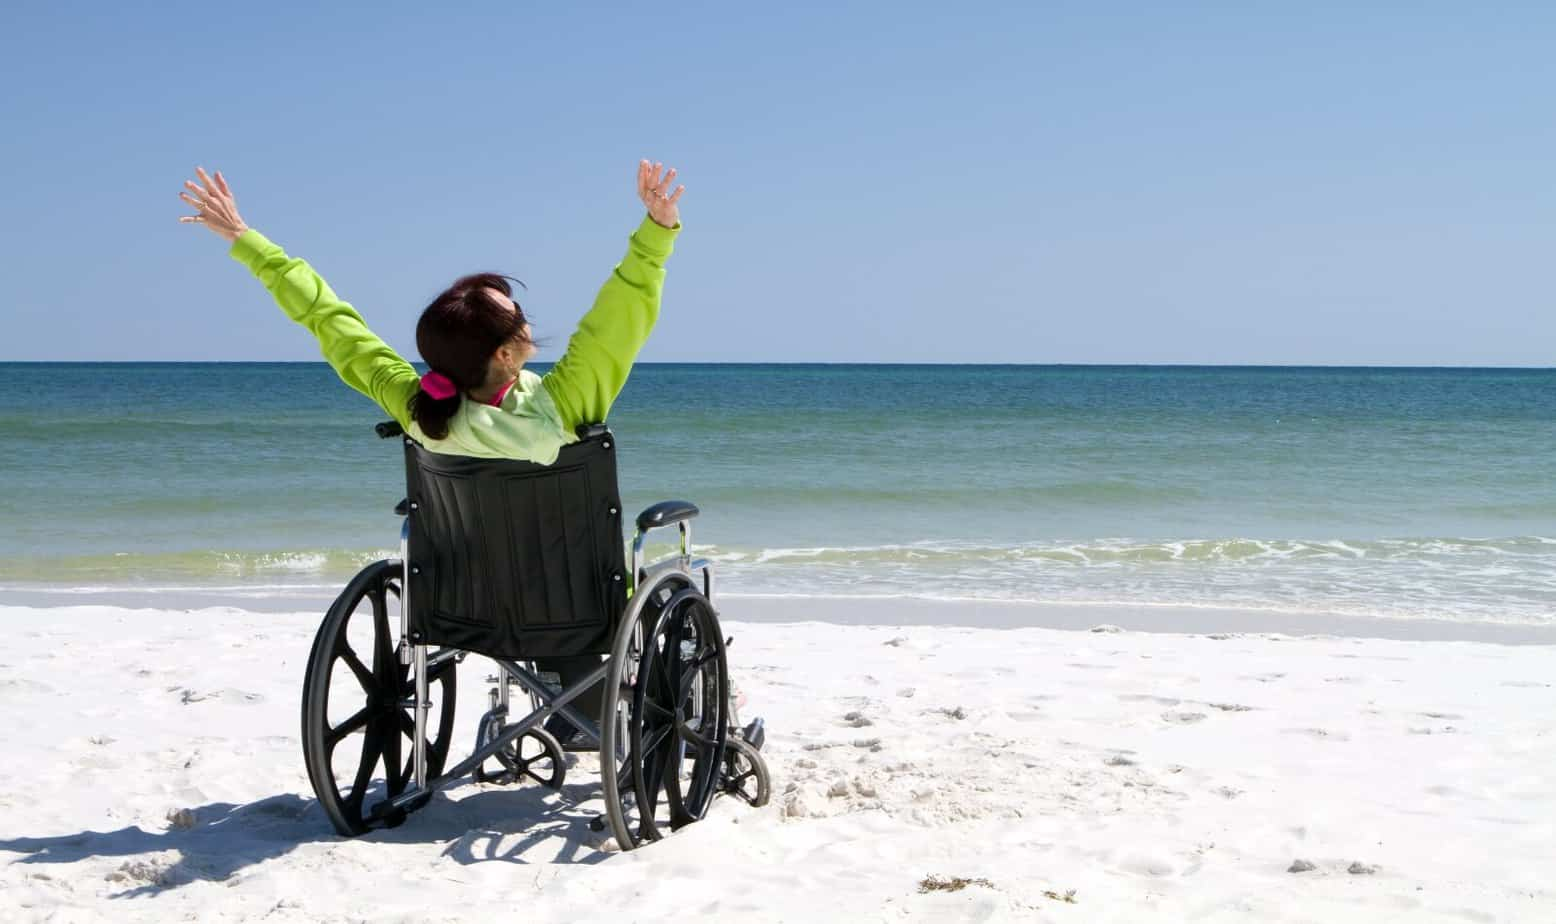 a lady with arms raised celebrates her achievement while traveling in the beach in her wheelchair